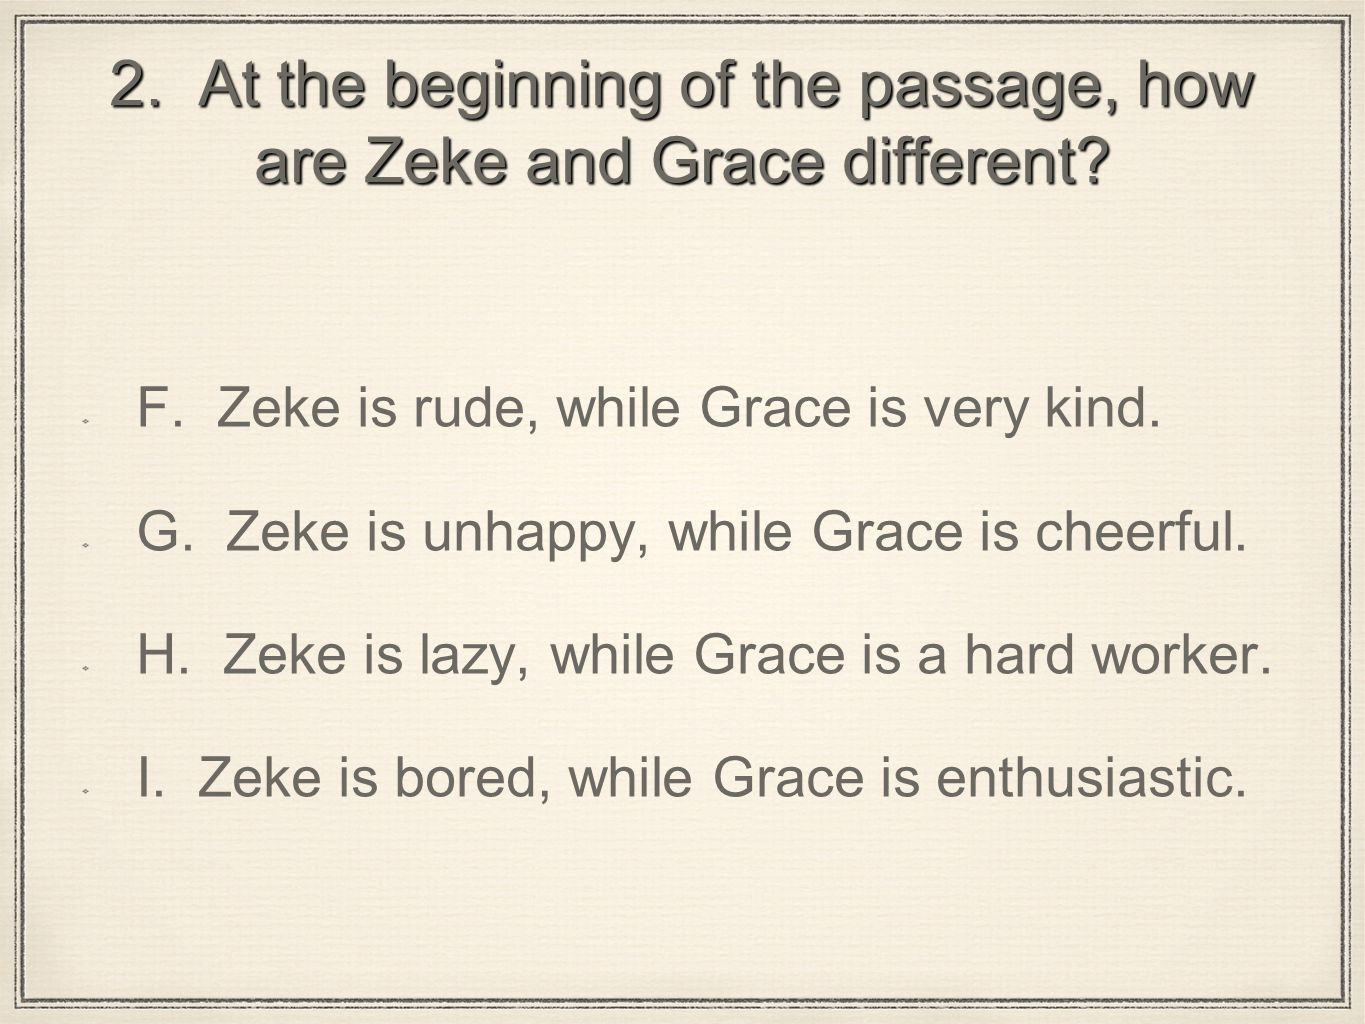 2. At the beginning of the passage, how are Zeke and Grace different